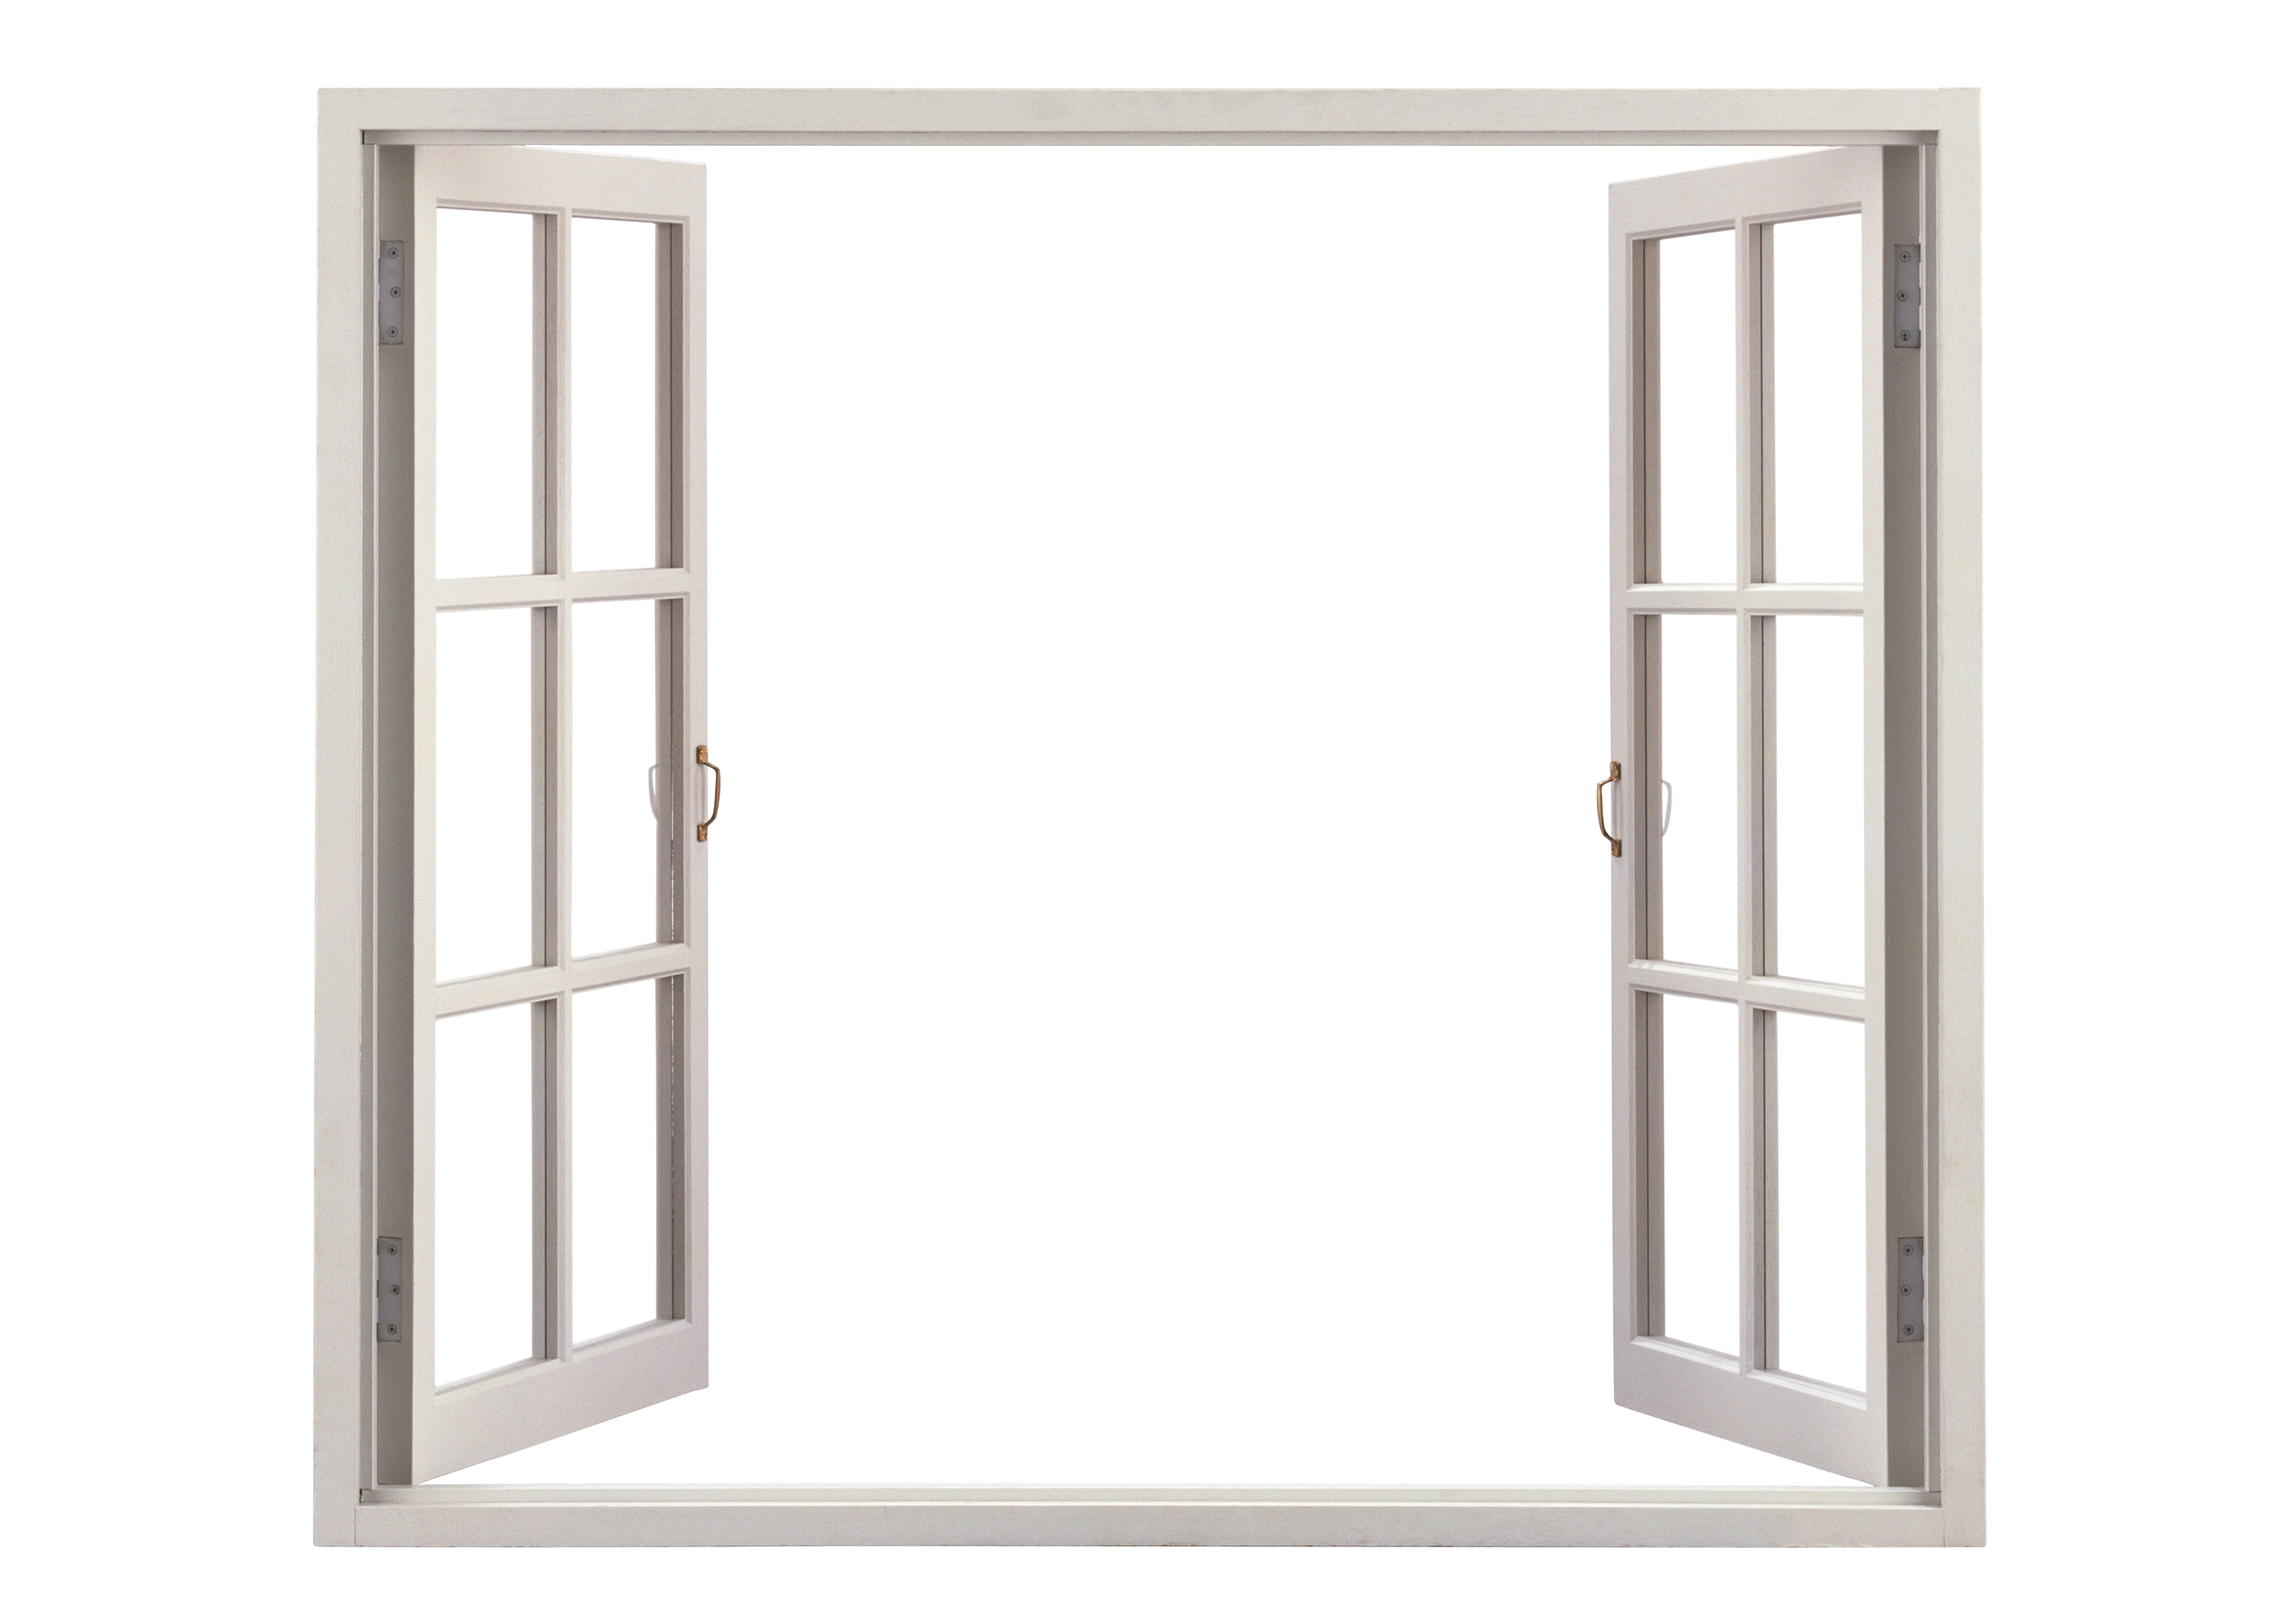 Obscure Glass Windows Opens Out : Window png images free download open